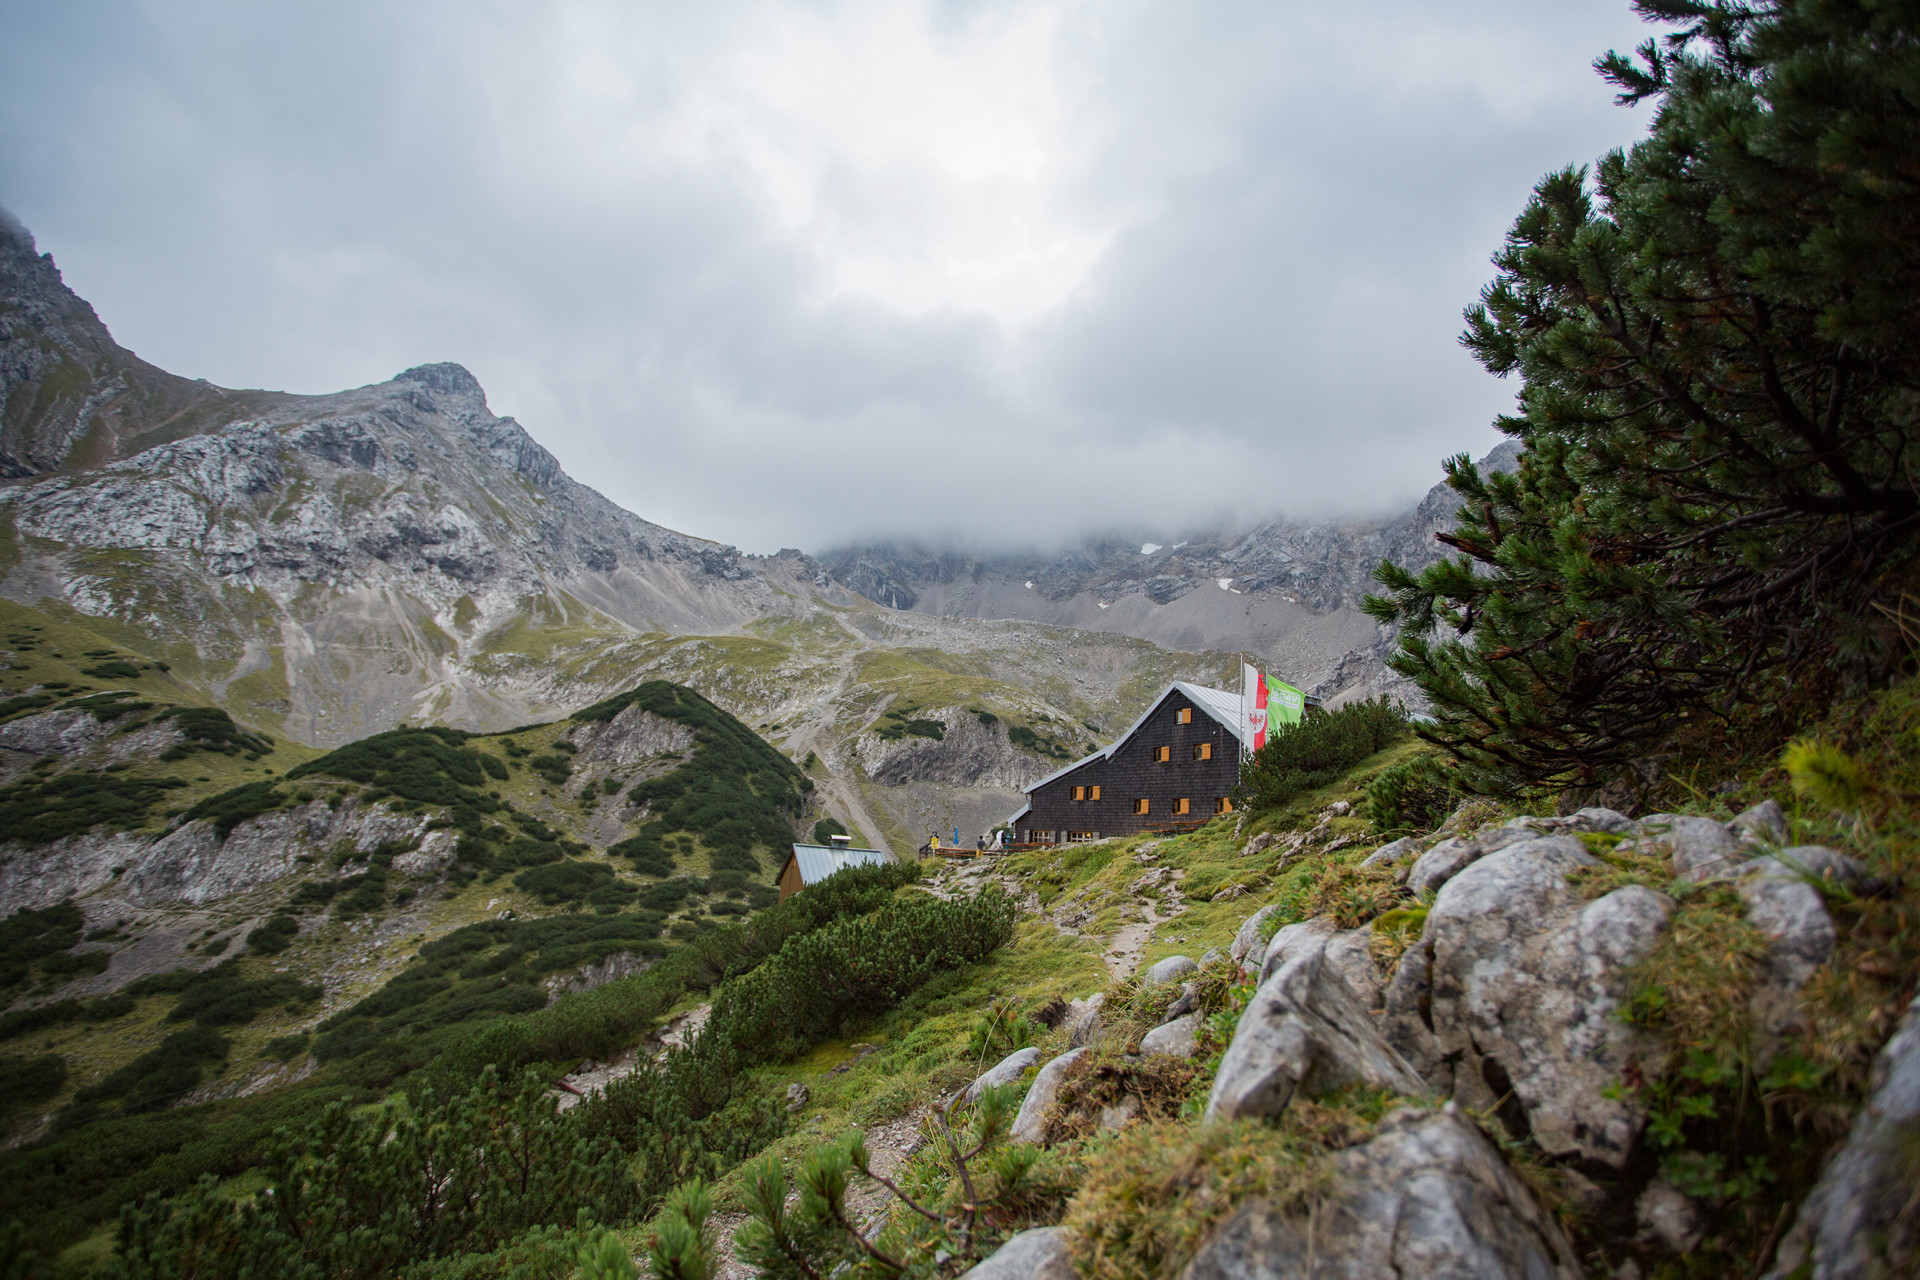 The Coburger Hütte is tucked idyllically between forests and mountains.